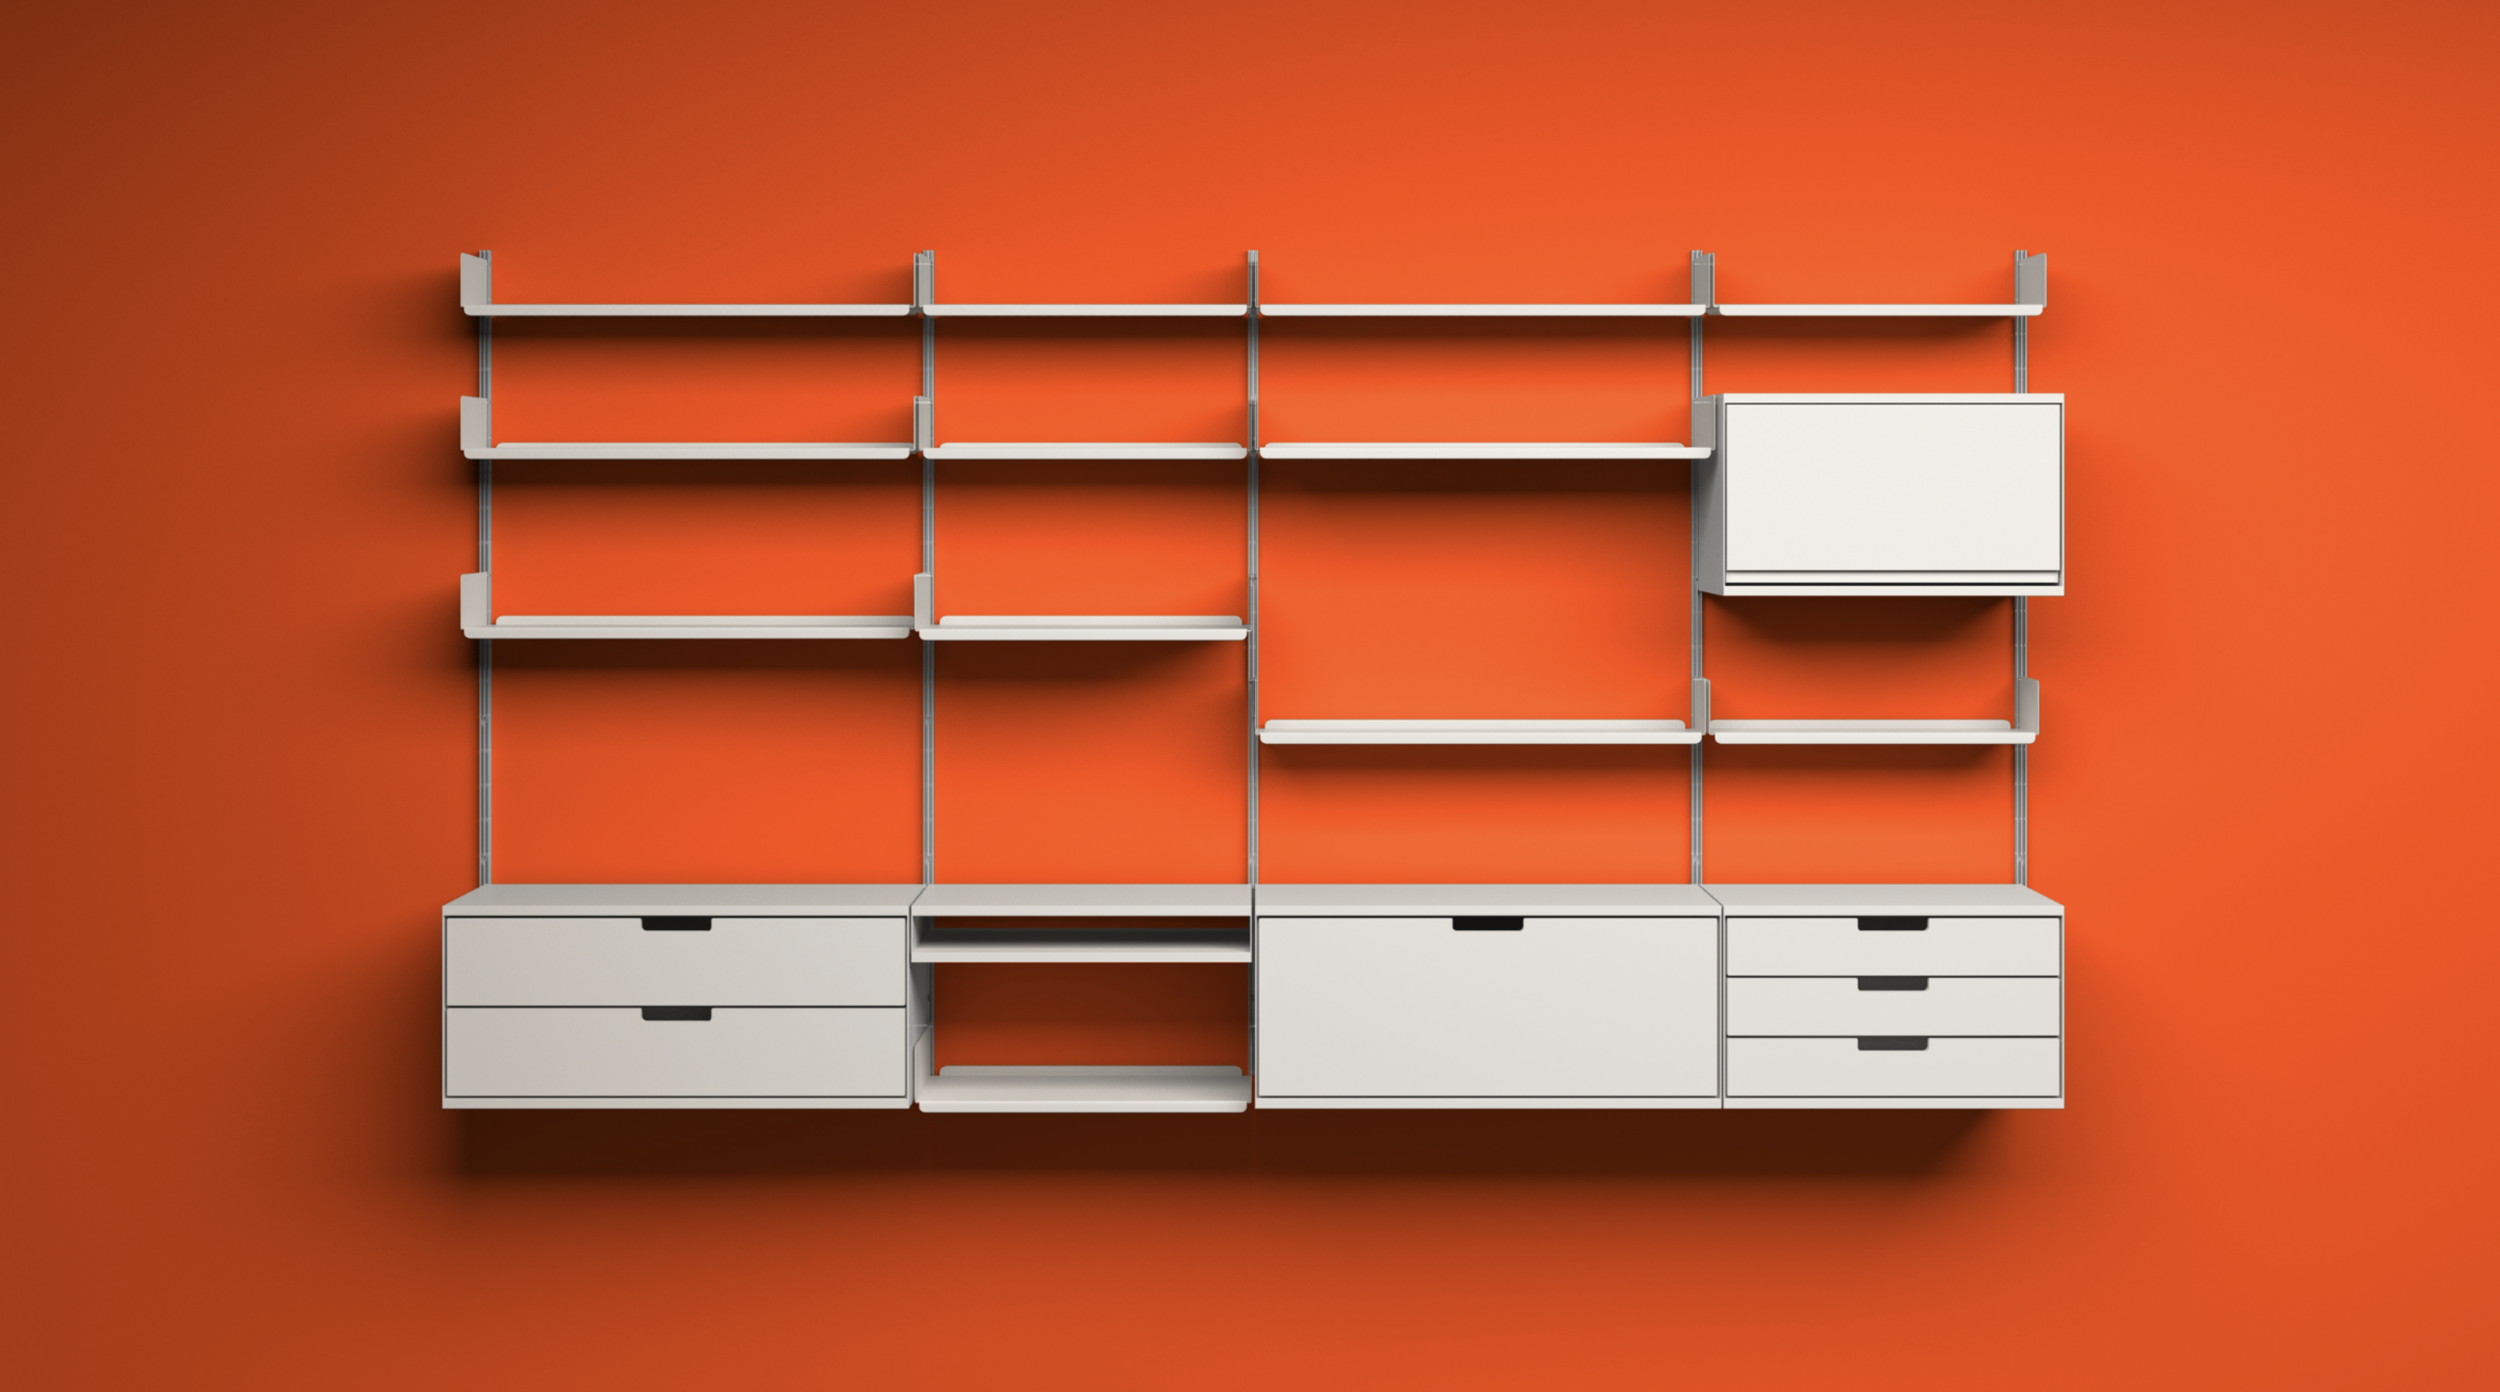 606 Universal Shelving System -  Designed by Dieter Rams in 1960 and made by Vitsœ ever since.